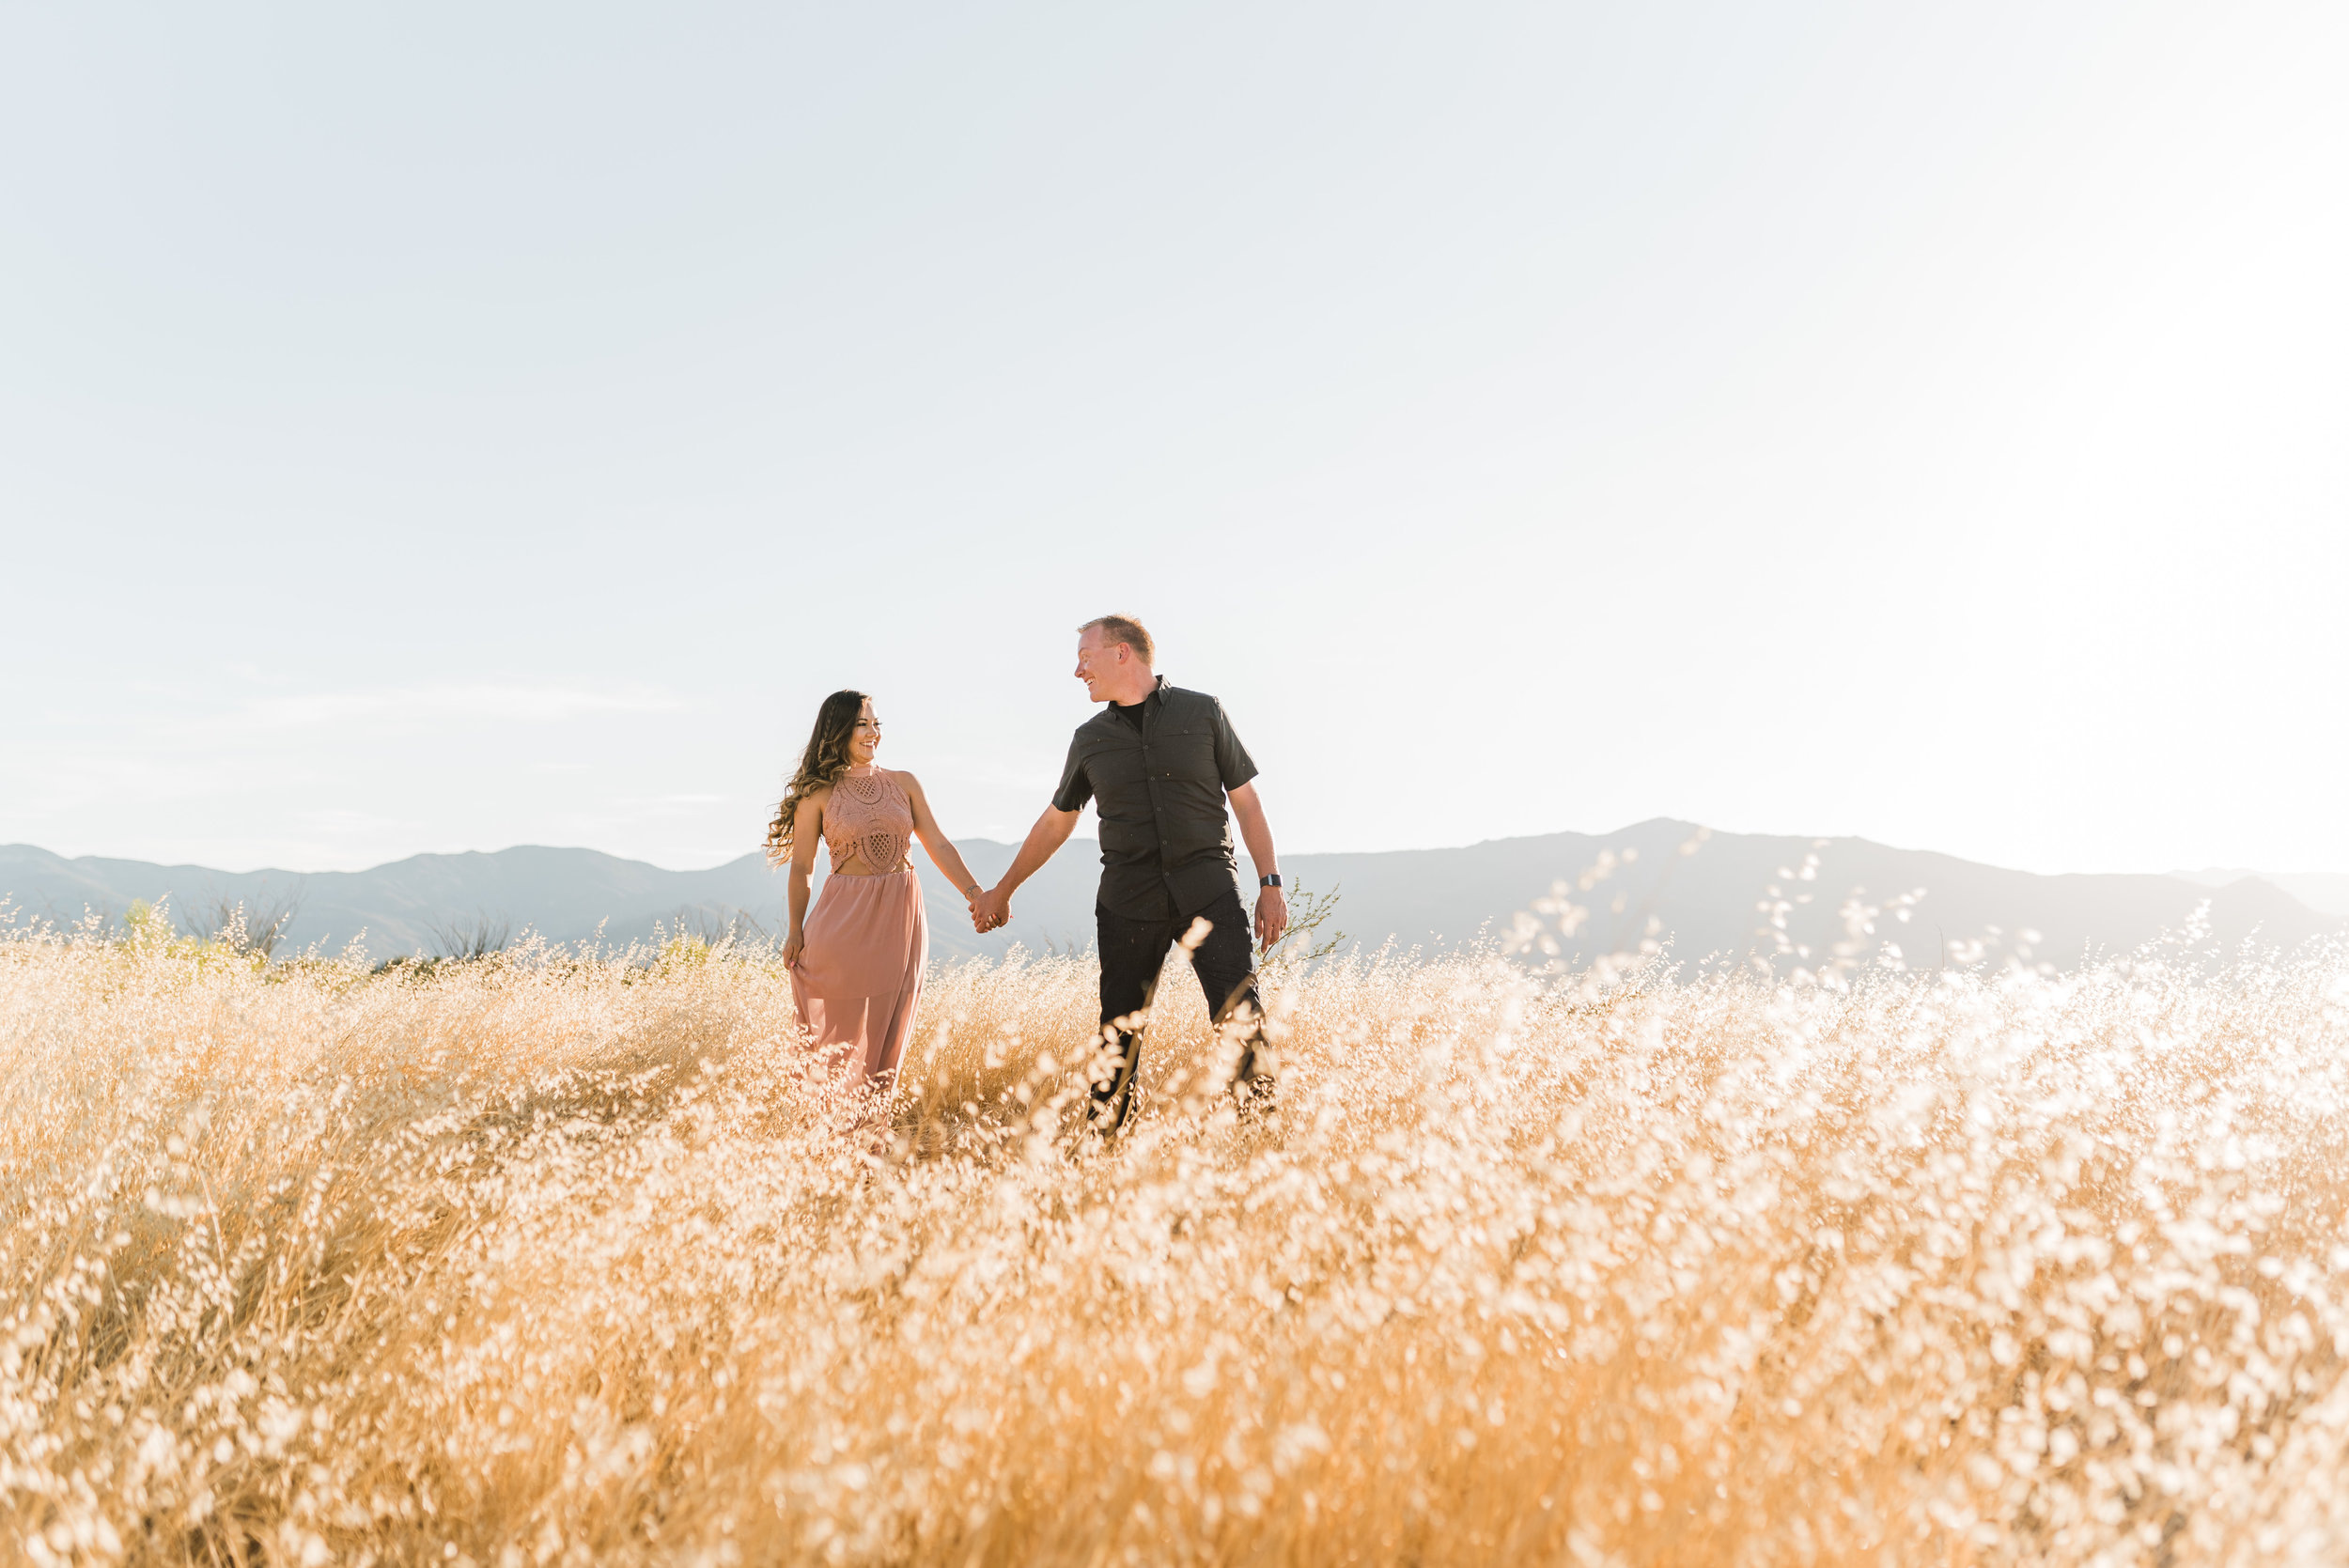 Couple holding hands walking in grass field